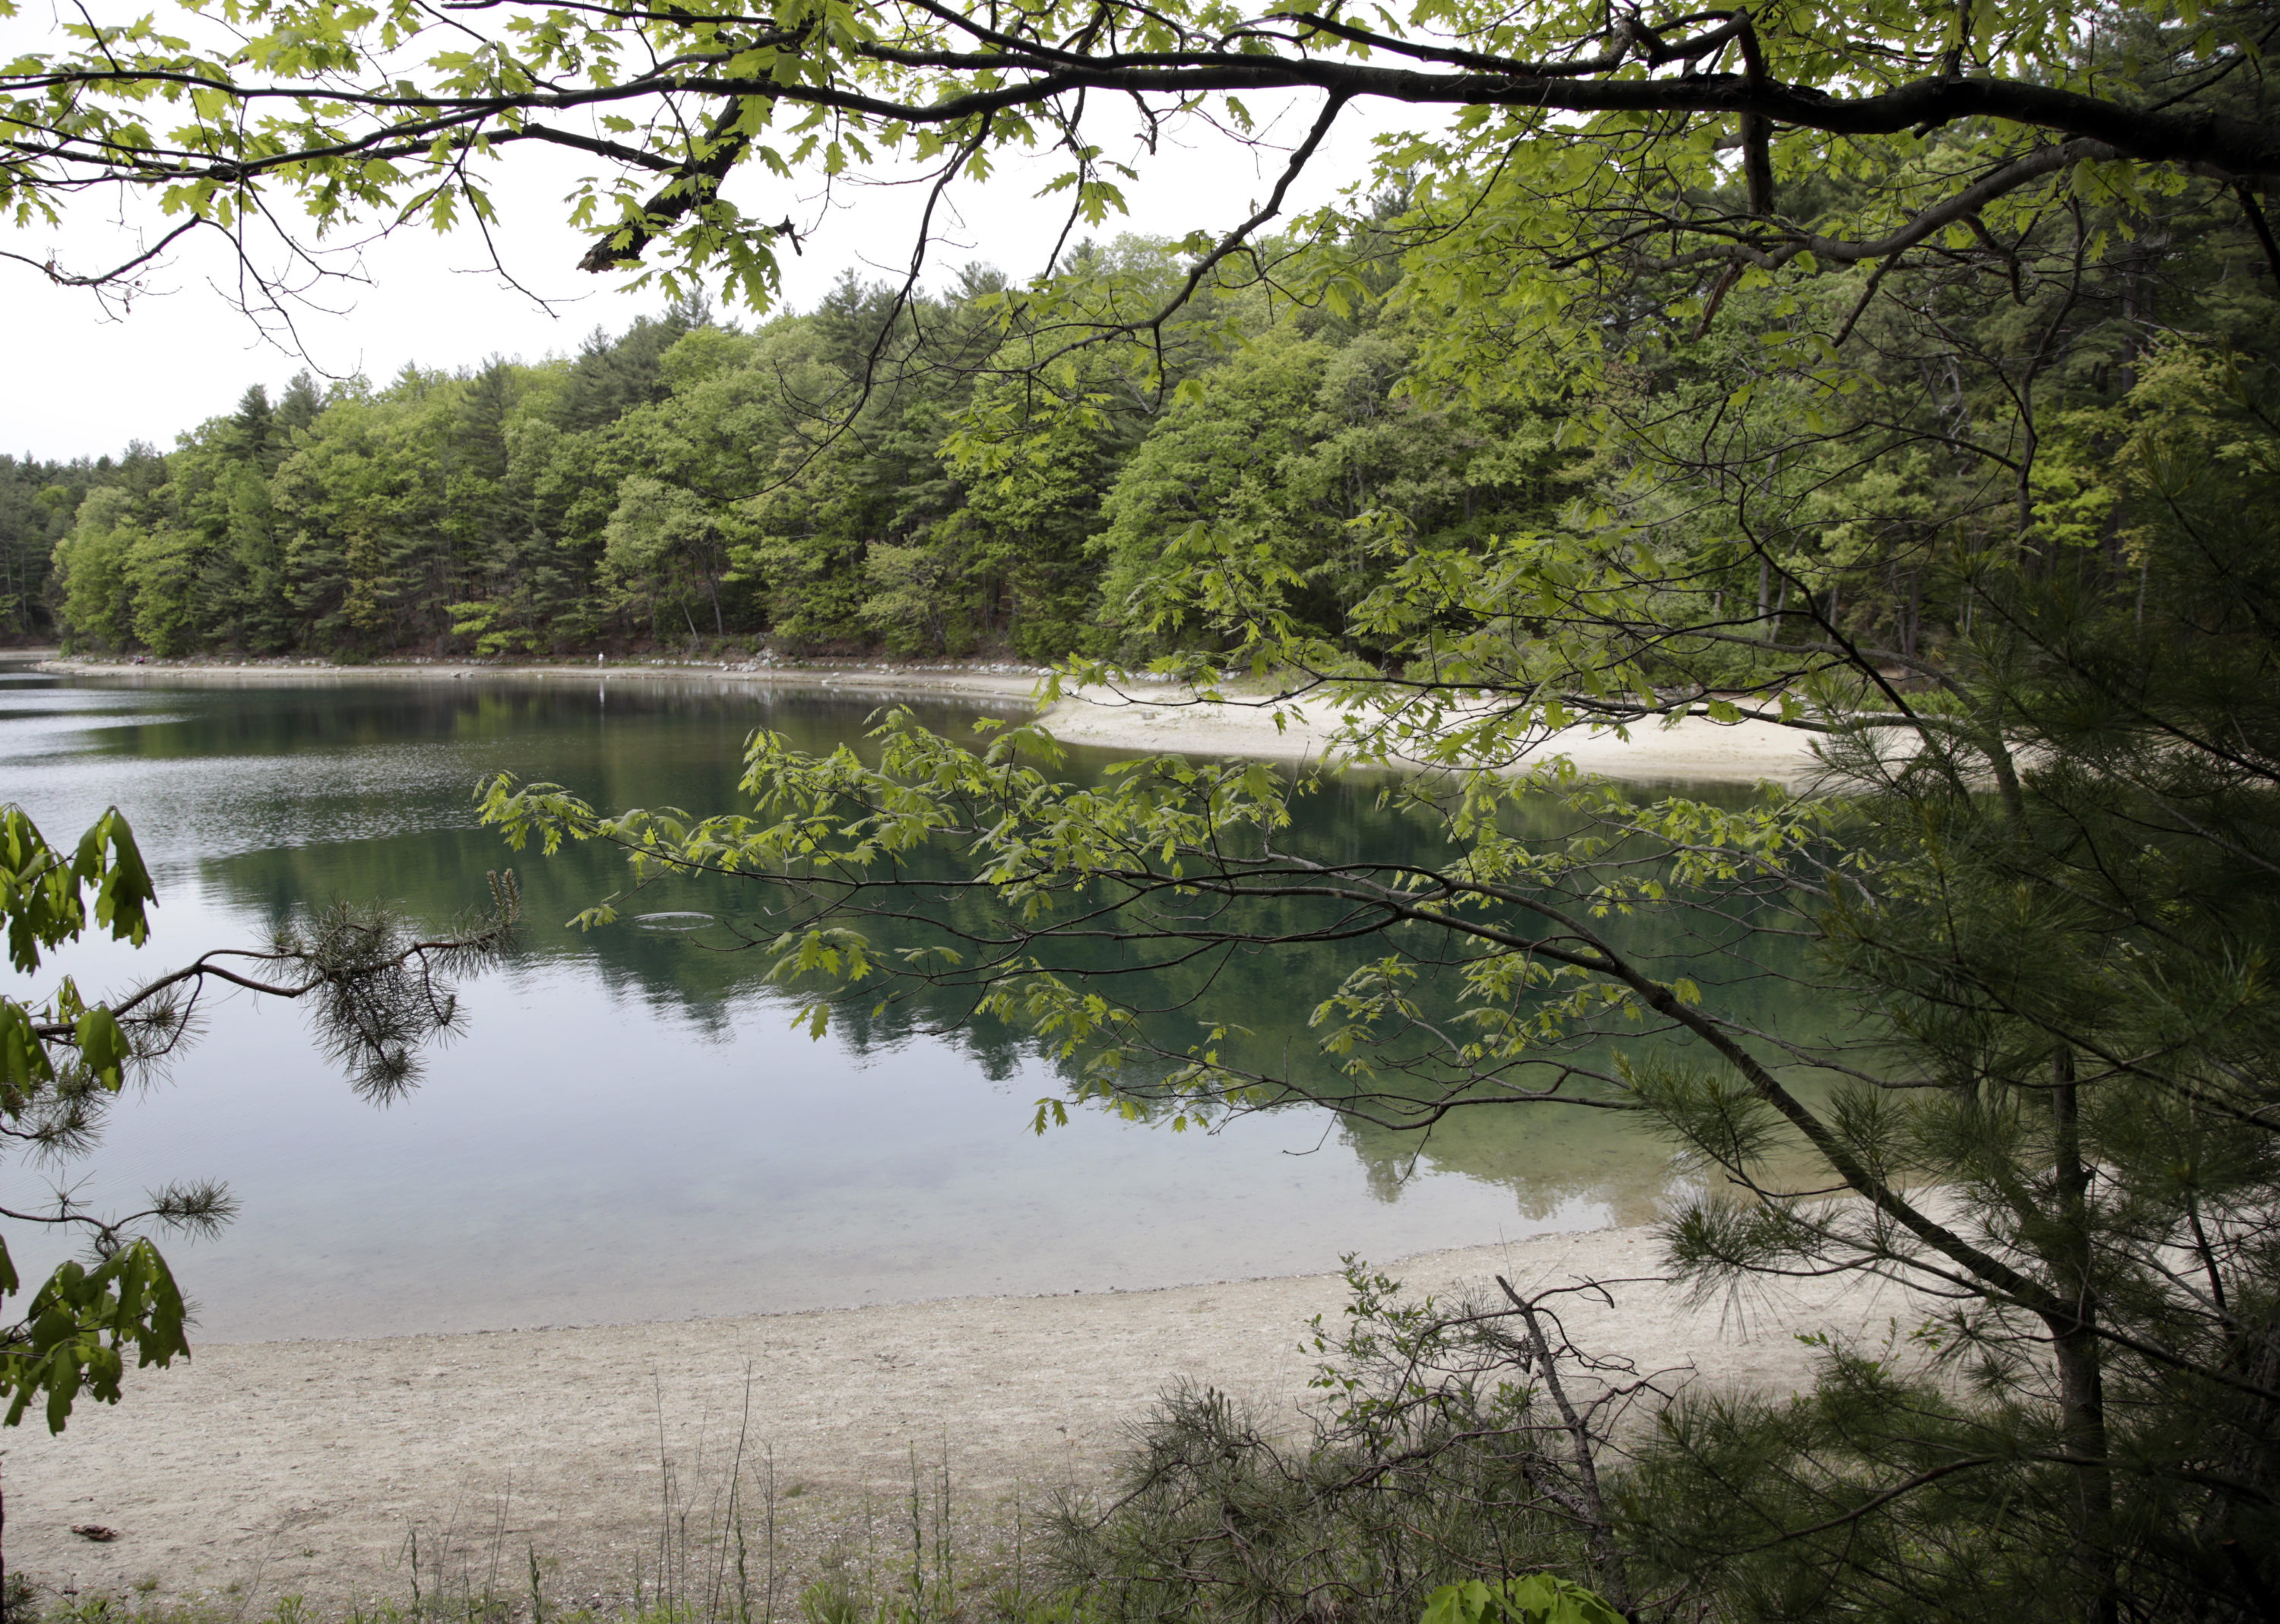 Walden Pond, pictured in 2017, in Concord, Mass., where 19th century American philosopher and naturalist Henry David Thoreau spent two years in solitude and reflection. (Elise Amendola/AP)